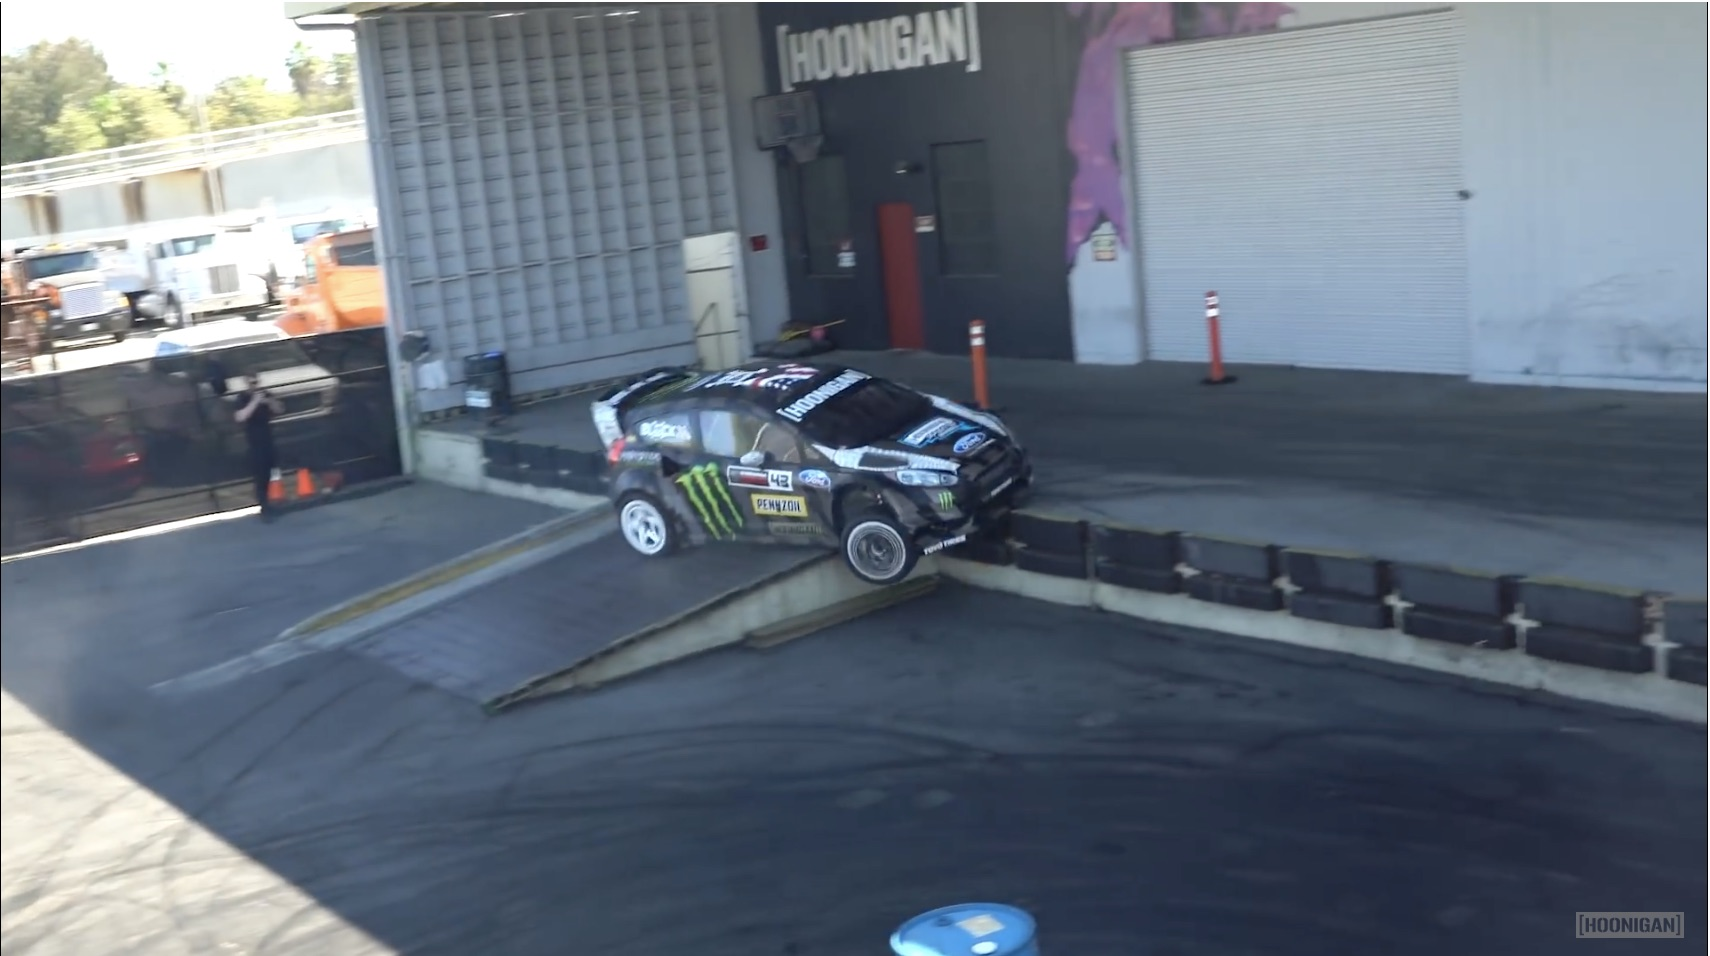 Lead By Example: Ken Block Tears Up The Hoonigan Shop's Lot With His Rally Fiesta!